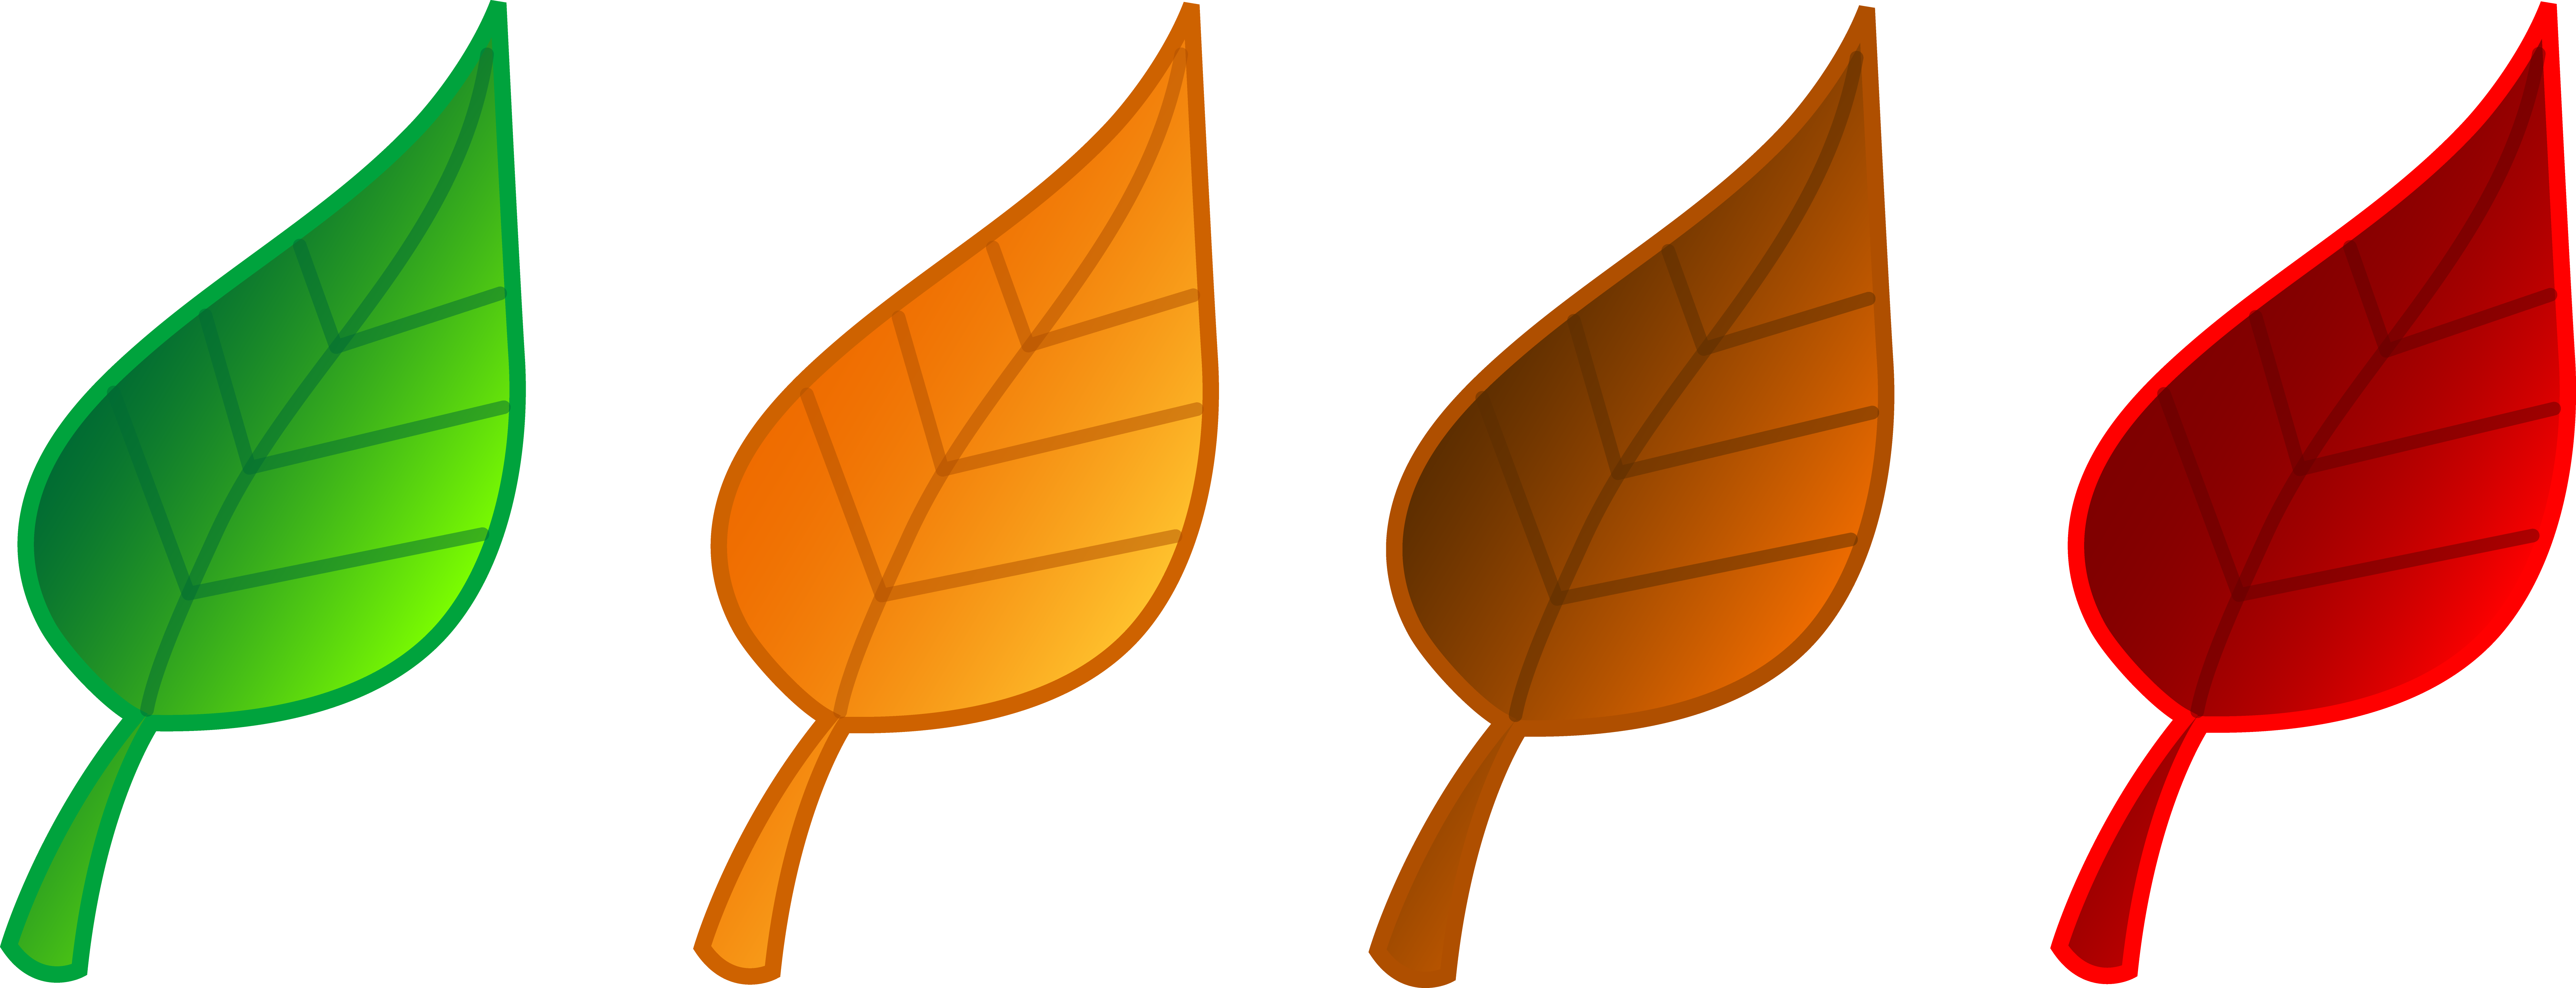 Yellow leaf clipart free .